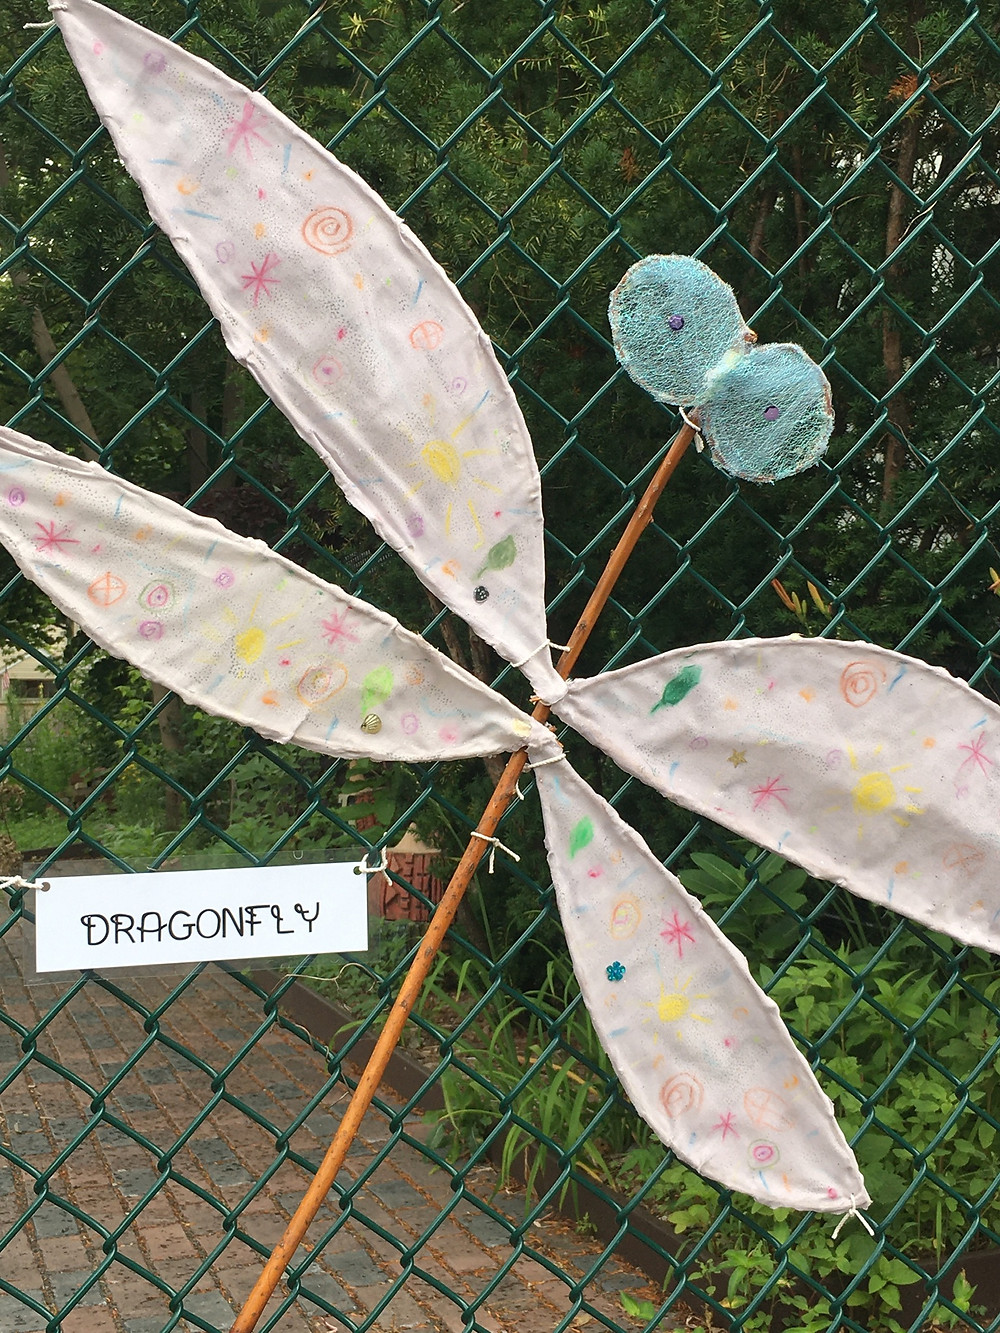 A willow branch dragonfly attached to the Growing Center fence.